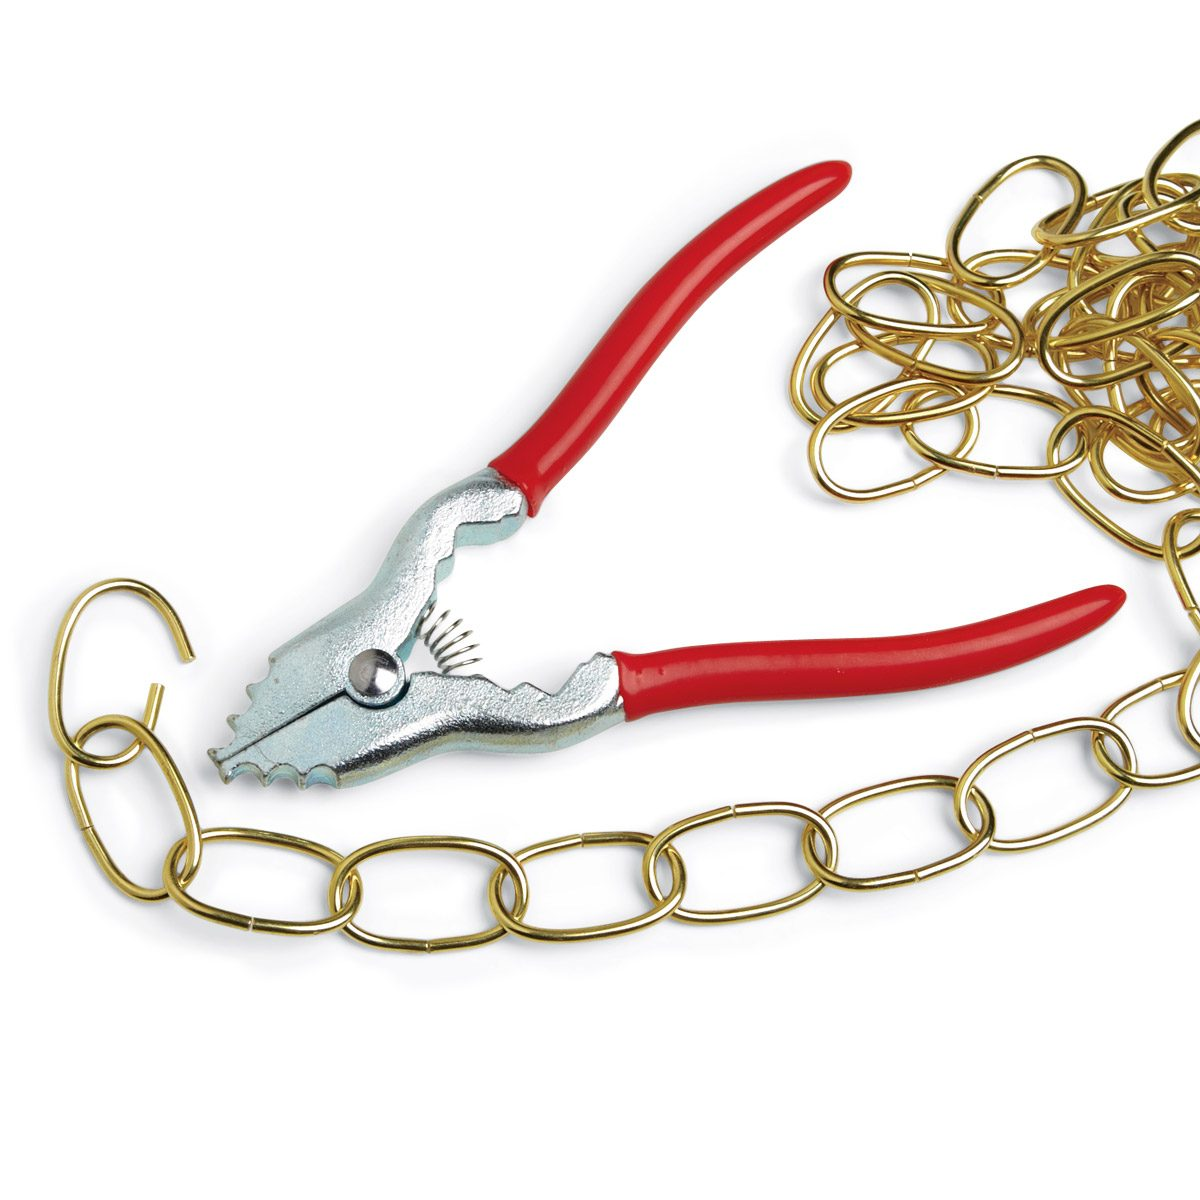 Chain pliers